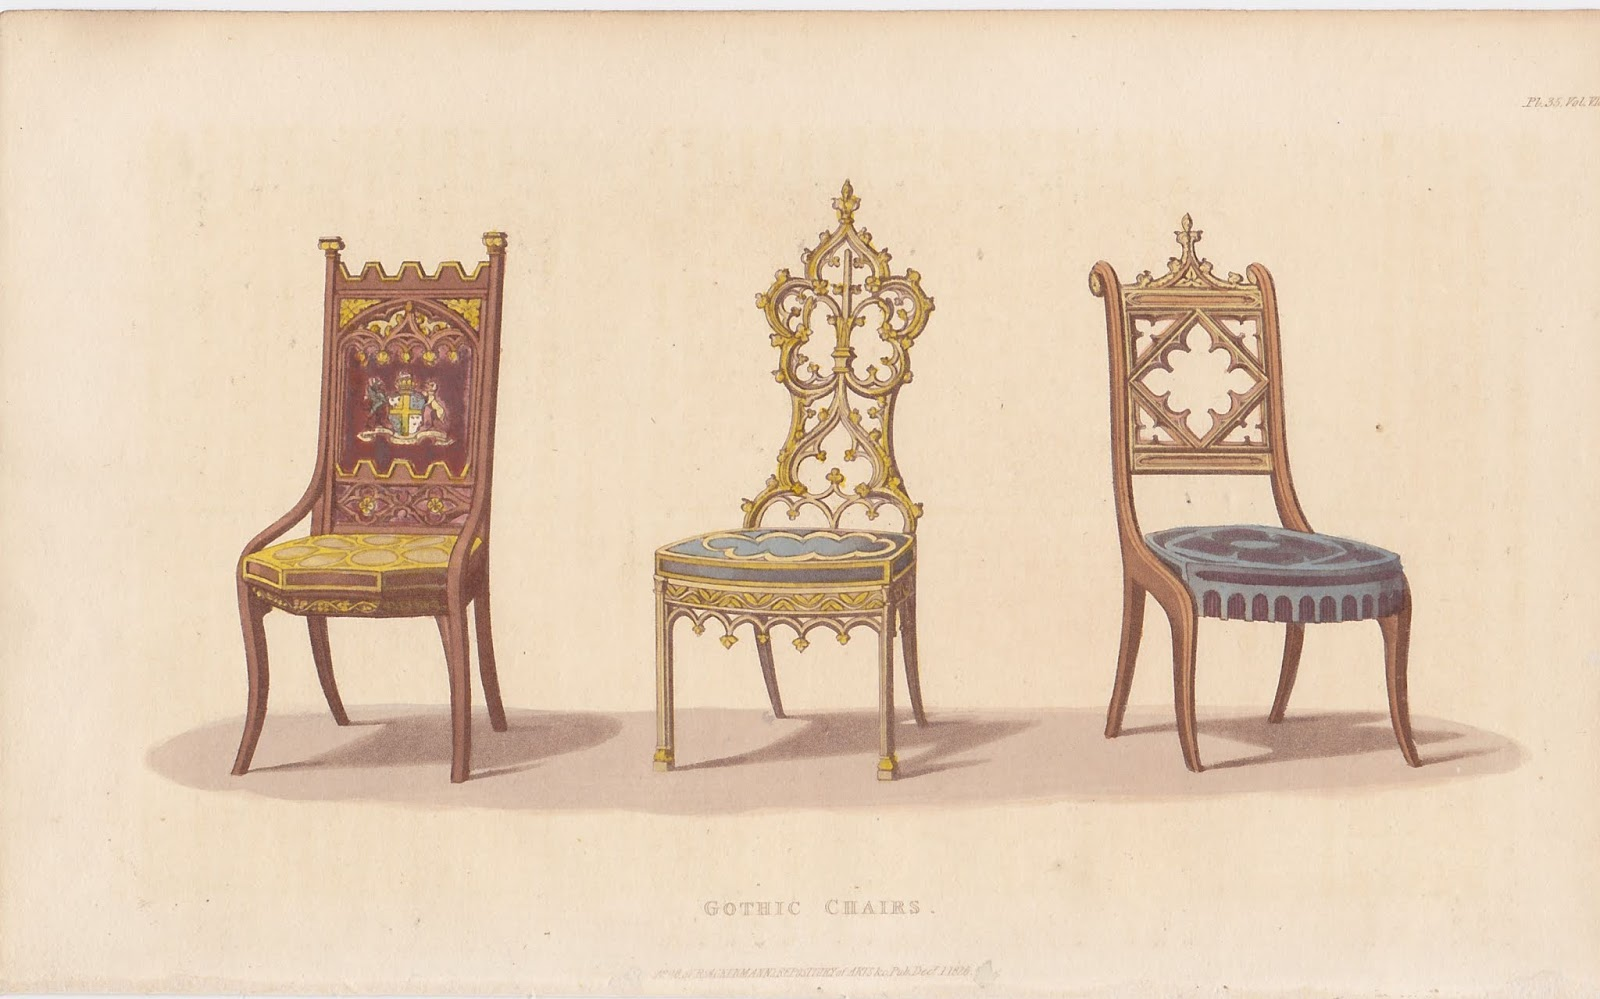 Nineteenteen Chairs That Go Bump In The Night Gothic Furniture Part 3